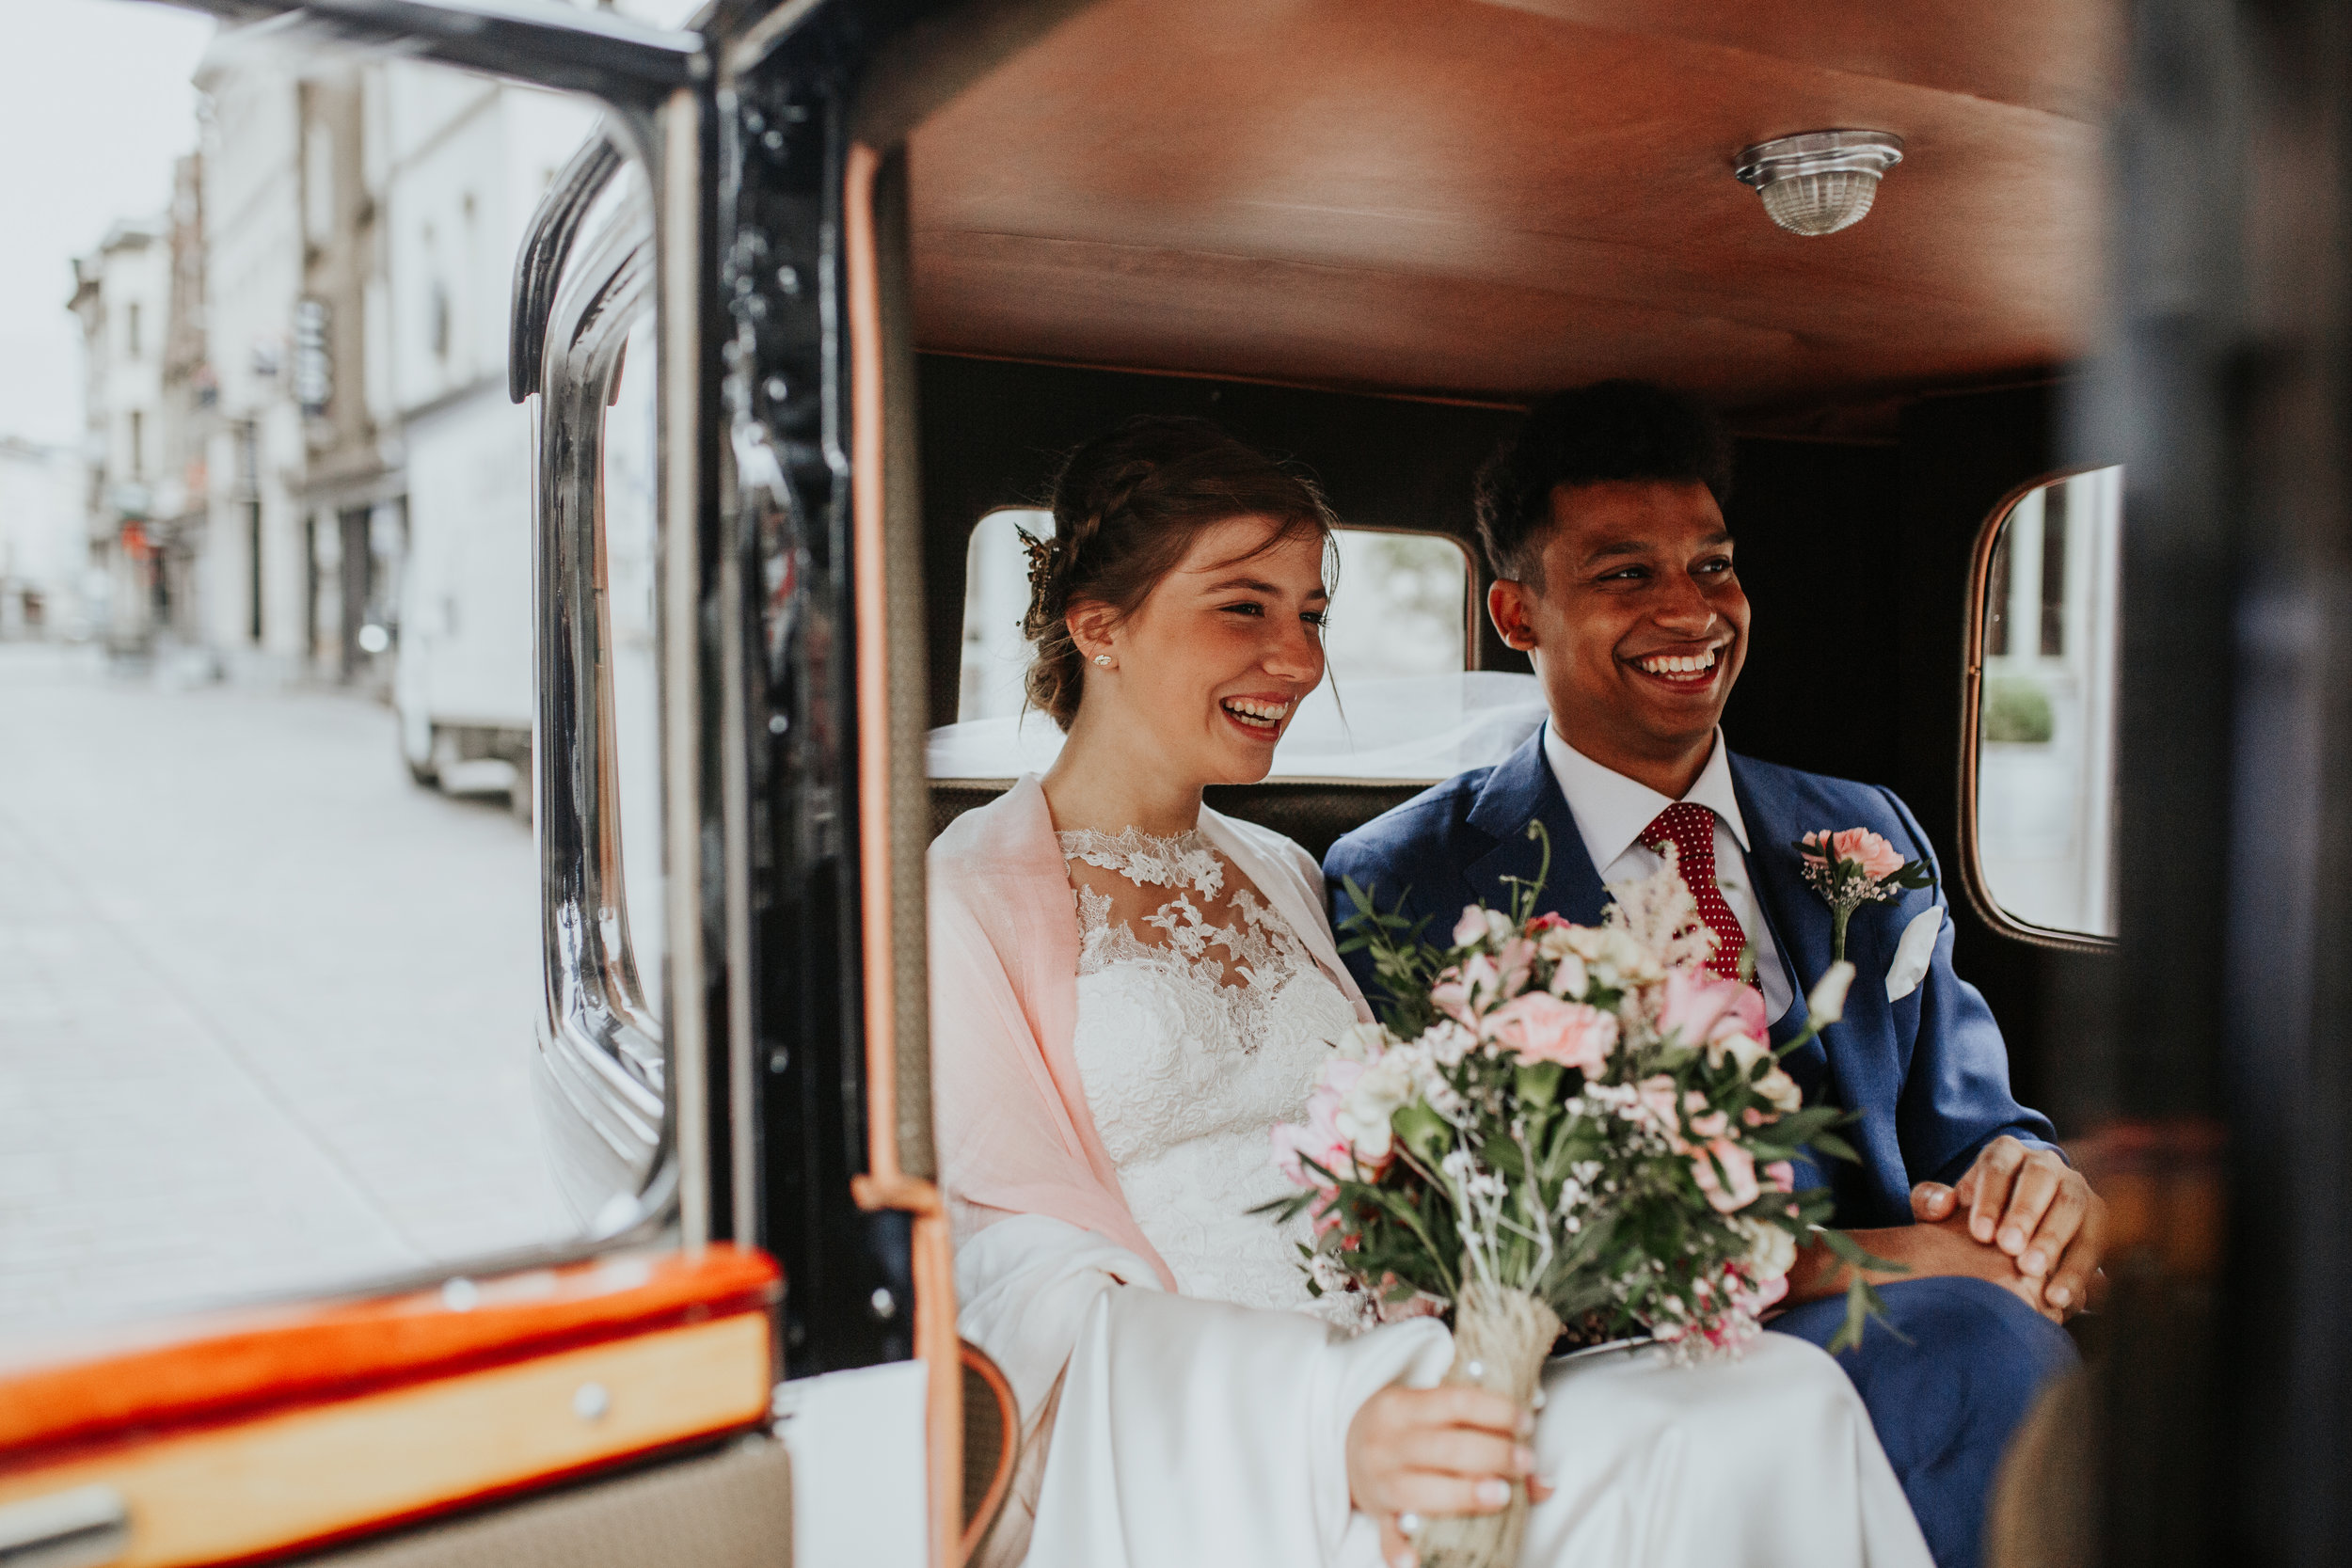 Naomi & David - This giddy Belgian couple flew me out to (you guessed it) Ghent, Belgium to photograph their day, and Europe did not disappoint. Their day was jam packed with running around the city center, dancing till 2 am, and hosting multiple events for every single loved one.